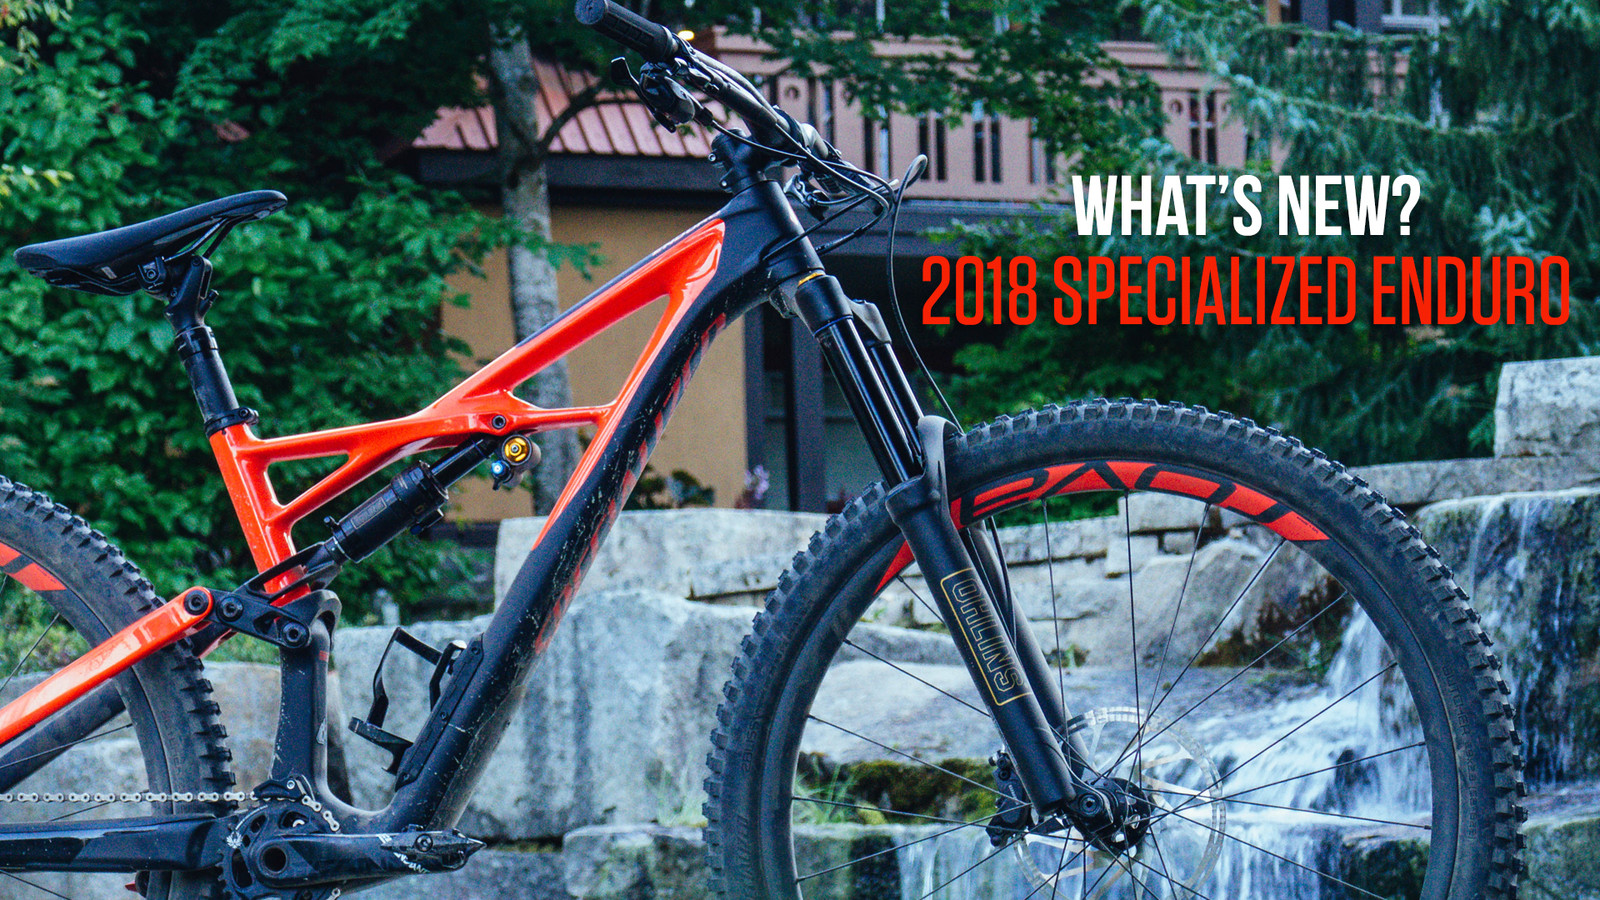 What's New on the 2018 Specialized Enduro?